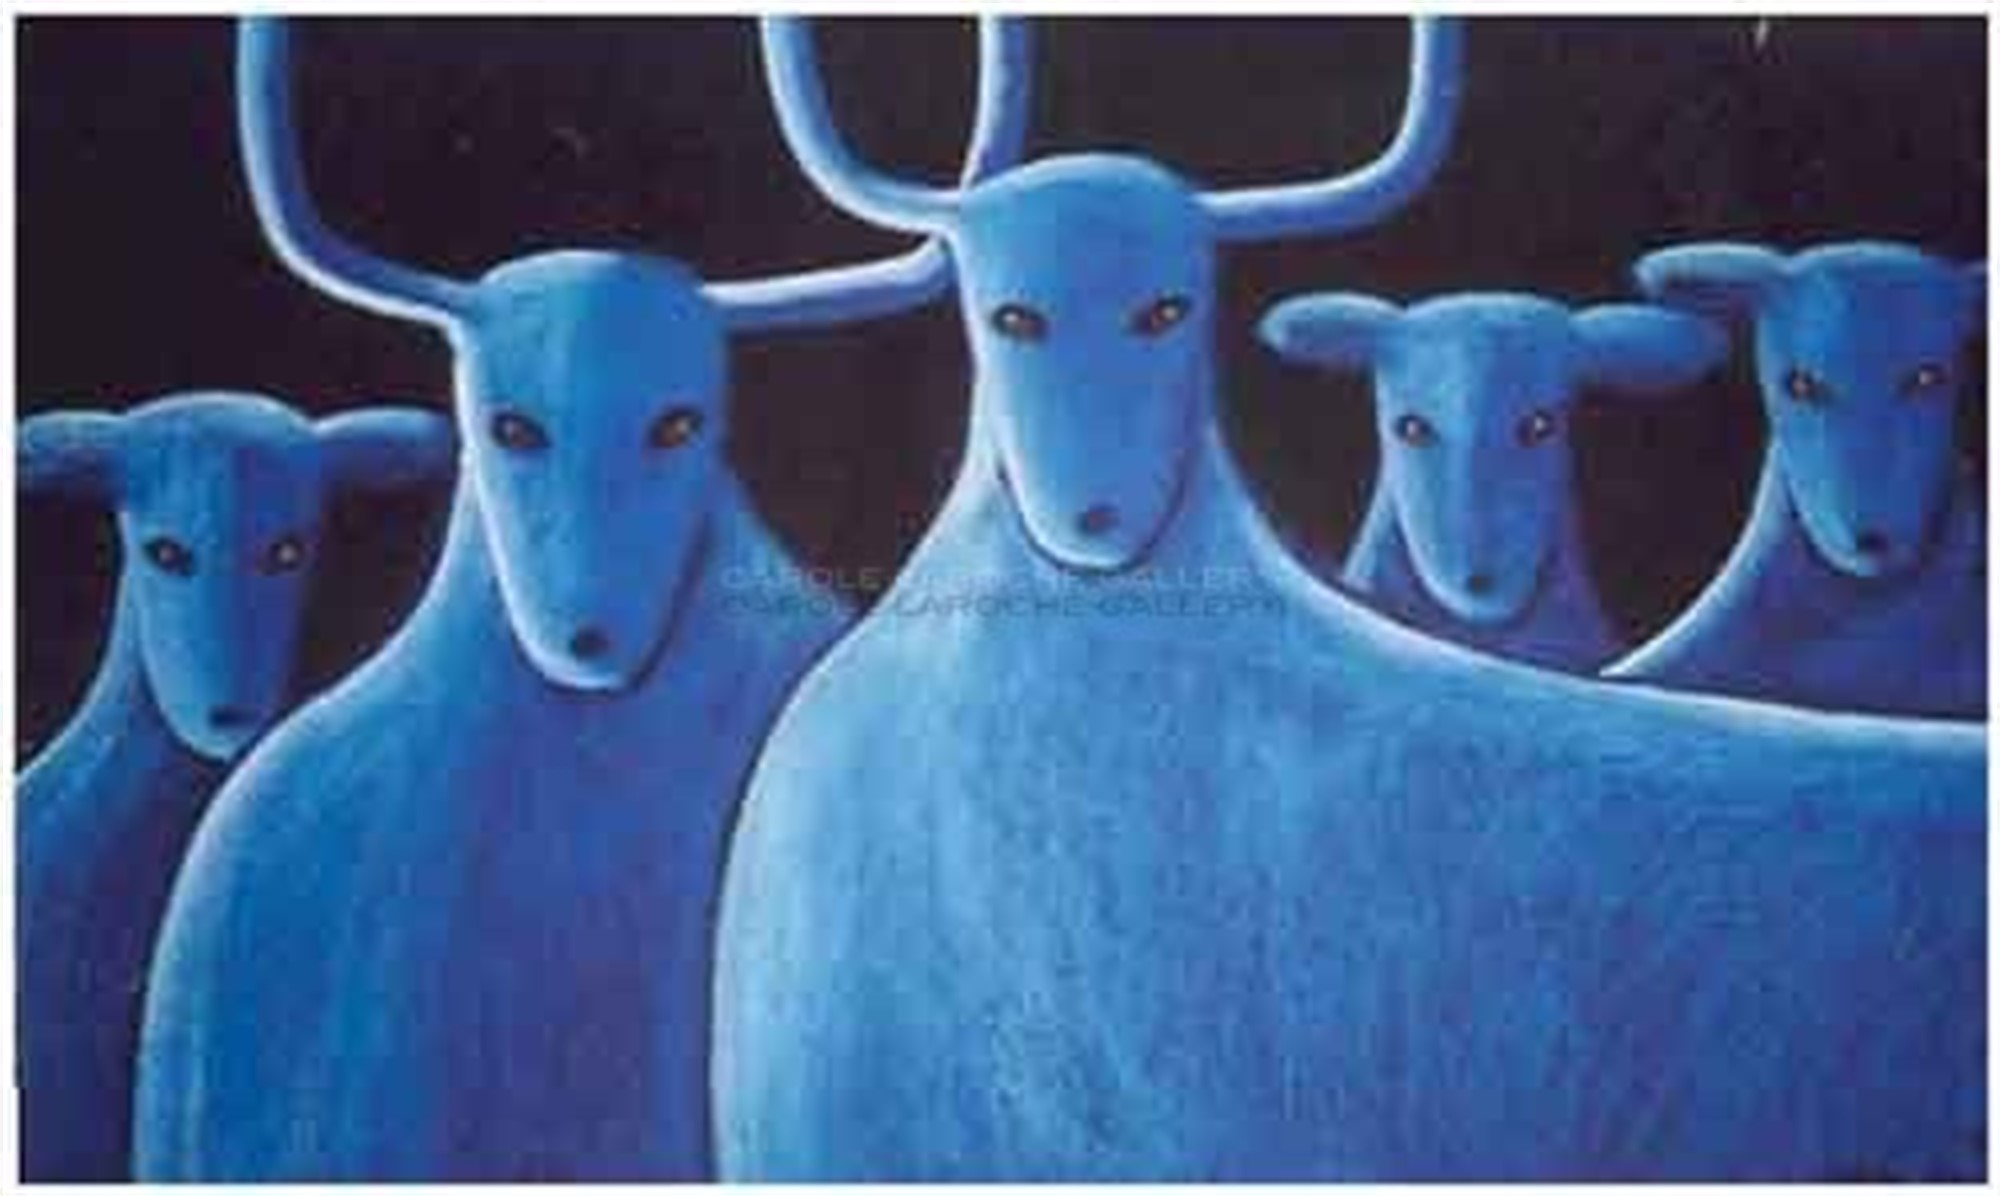 "FIVE BLUE DEER - limited edition giclee on canvas or on paper w/frame size of: (large) 40""x54"" $3500 or (medium) 30""x40"" $2200 by Carole LaRoche"